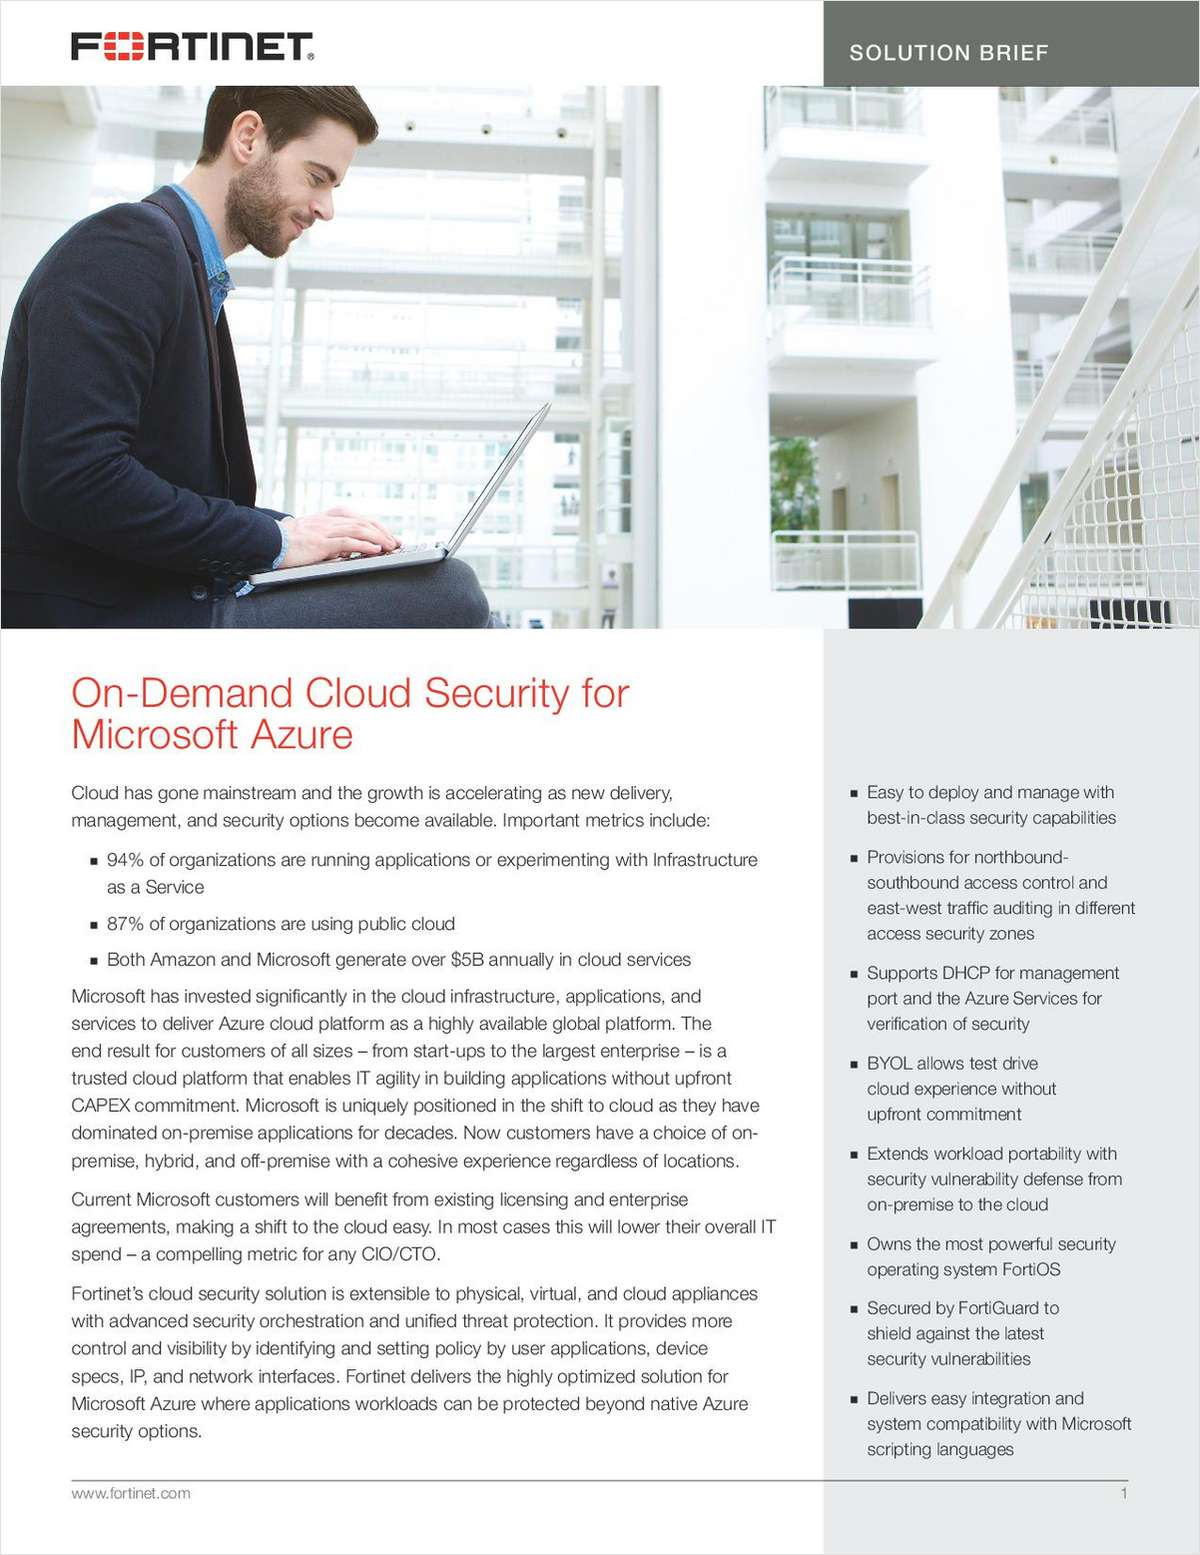 On-Demand Cloud Security for Microsoft Azure